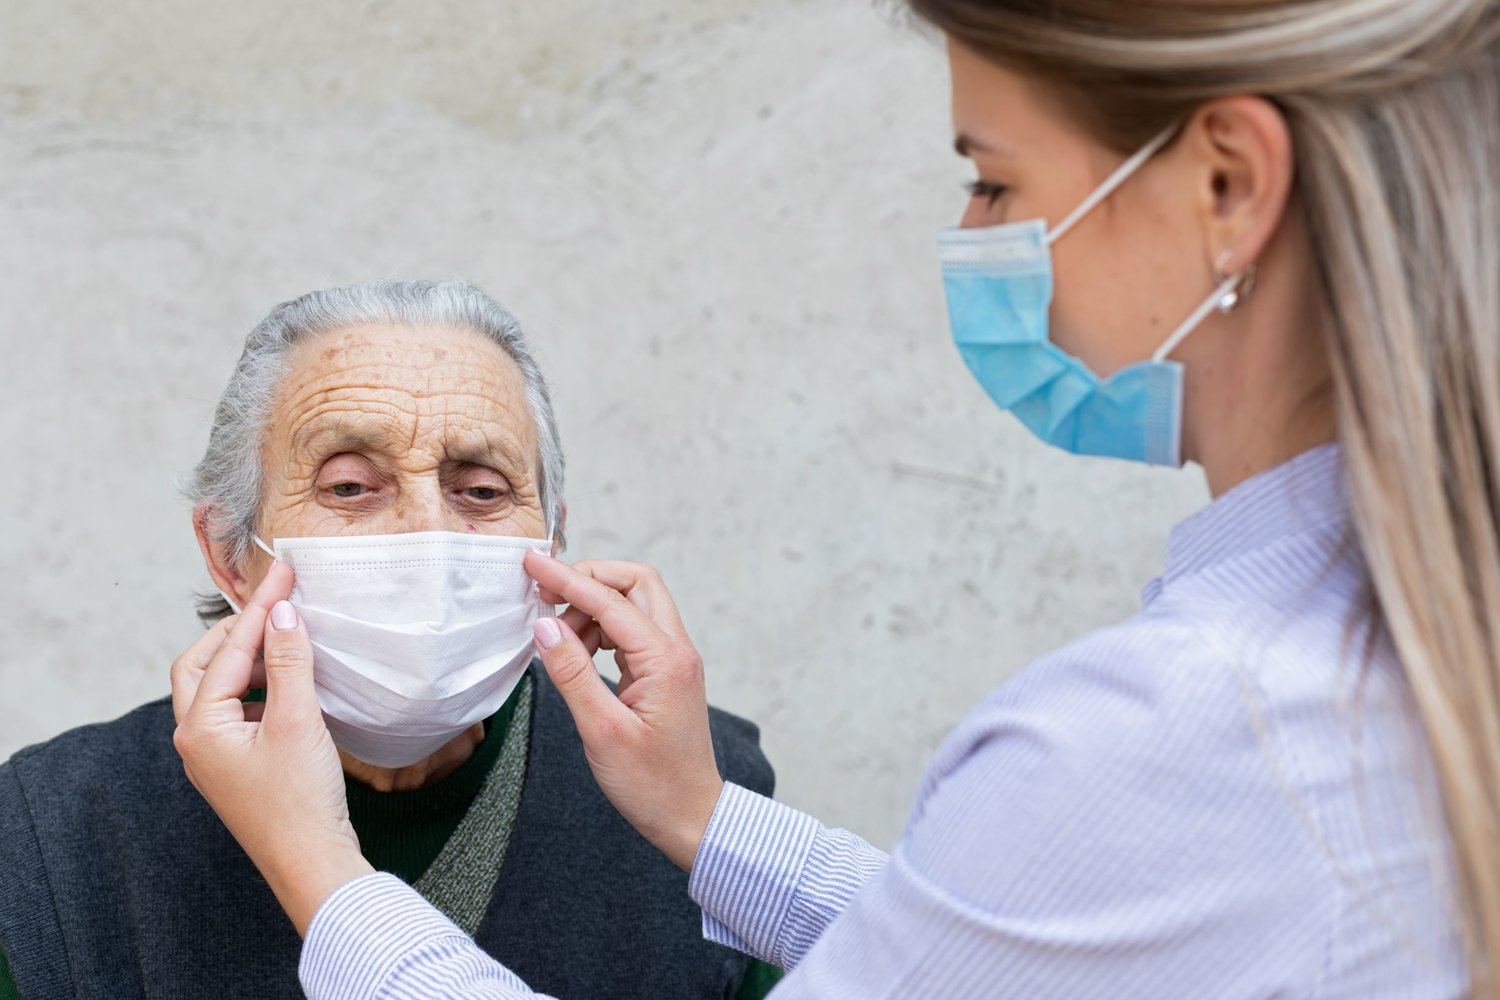 Caregivers are at risk of catching COVID-19 or spreading the virus to their families, as they work closely with elderly residents.